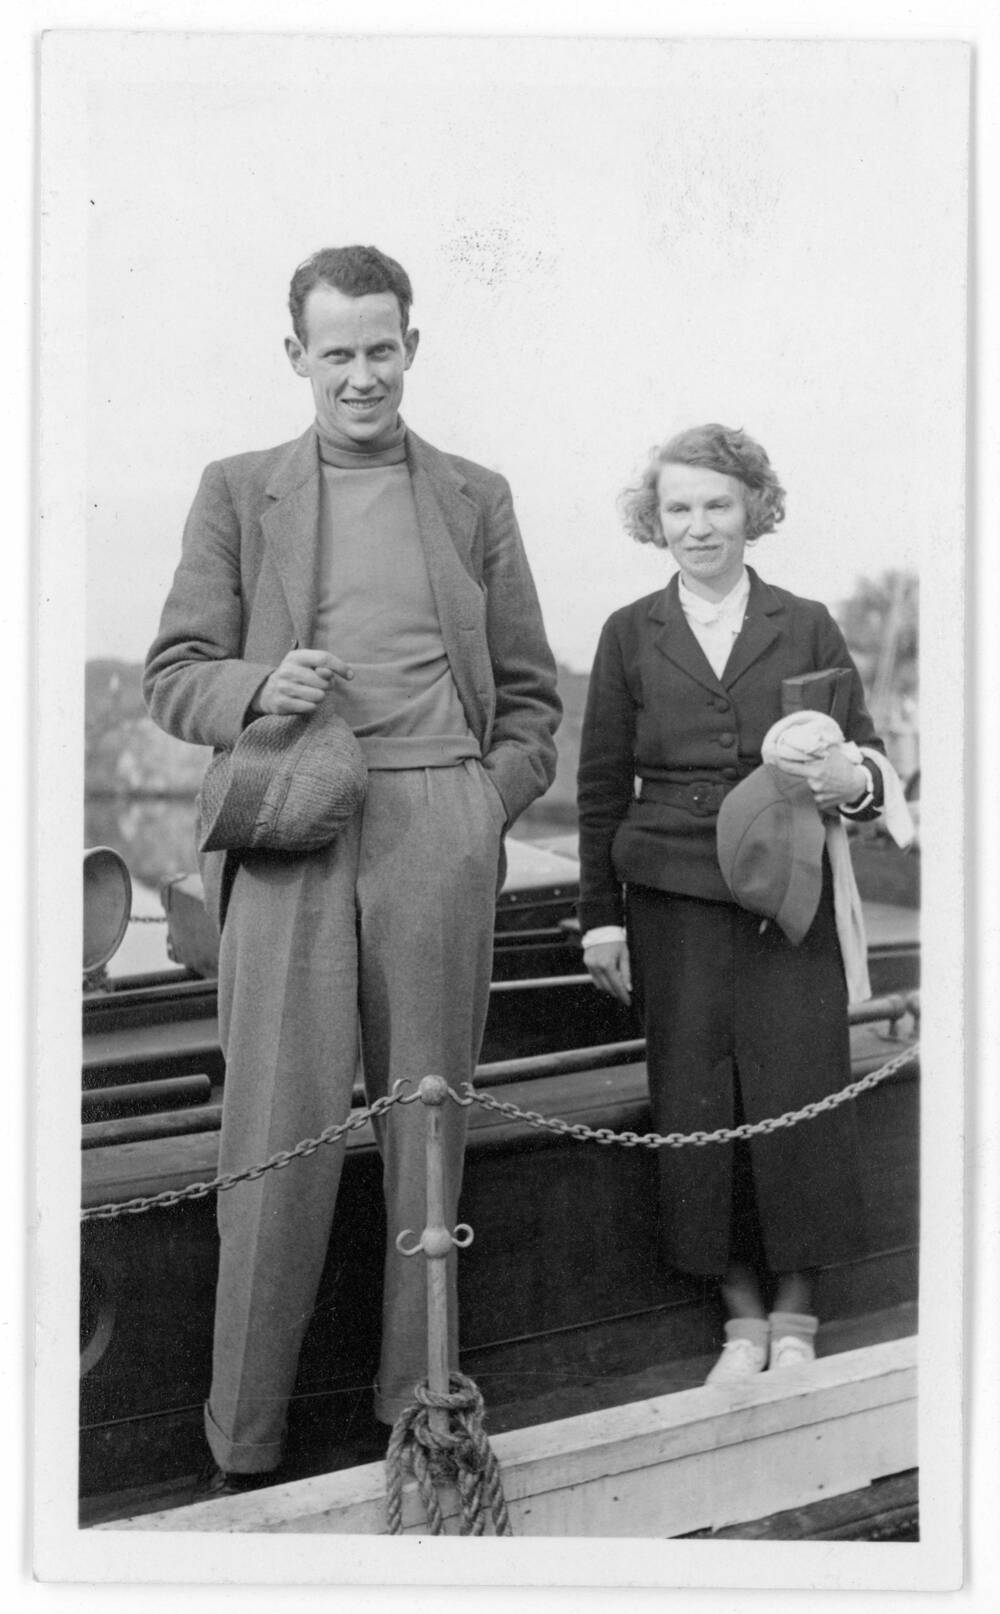 John Lorne Campbell and Margaret Fay Shaw a few weeks after their wedding in 1935